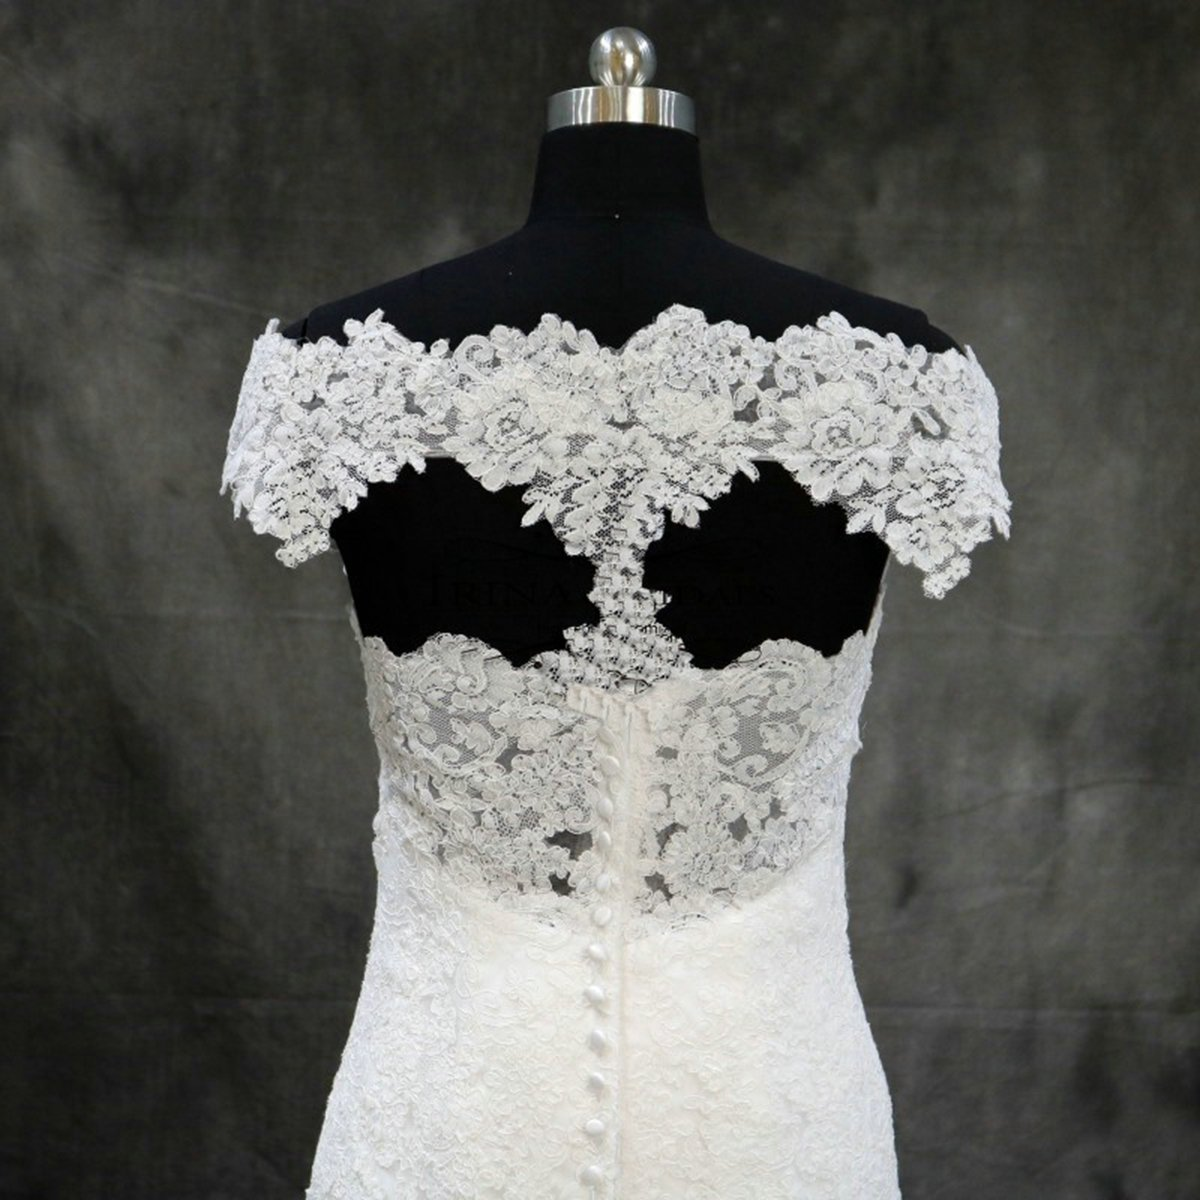 Girls Dress 2018 Vestidos de Novia Con Encaje Boat Neck Lace Appliques Mermaid Keyhole Back Wedding Dress for Bridal at Amazon Womens Clothing store: